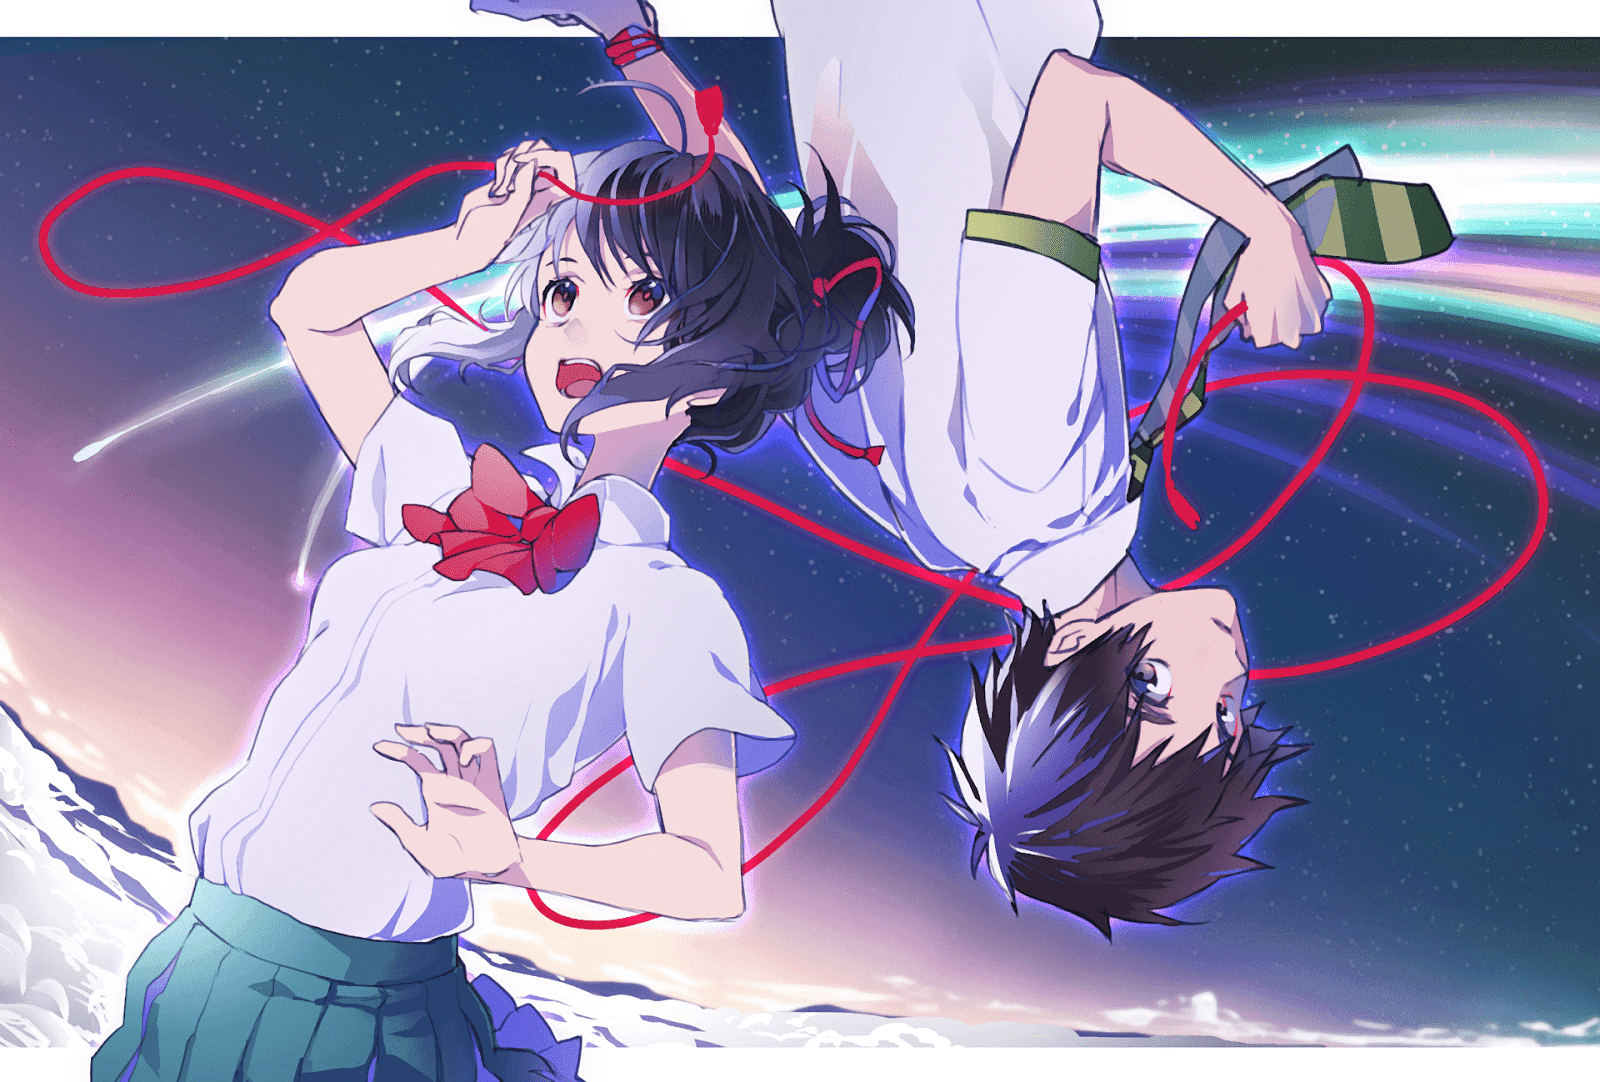 AowVN%2B%252820%2529 - [ Hình Nền ] Anime Your Name. - Kimi no Nawa full HD cực đẹp | Anime Wallpaper